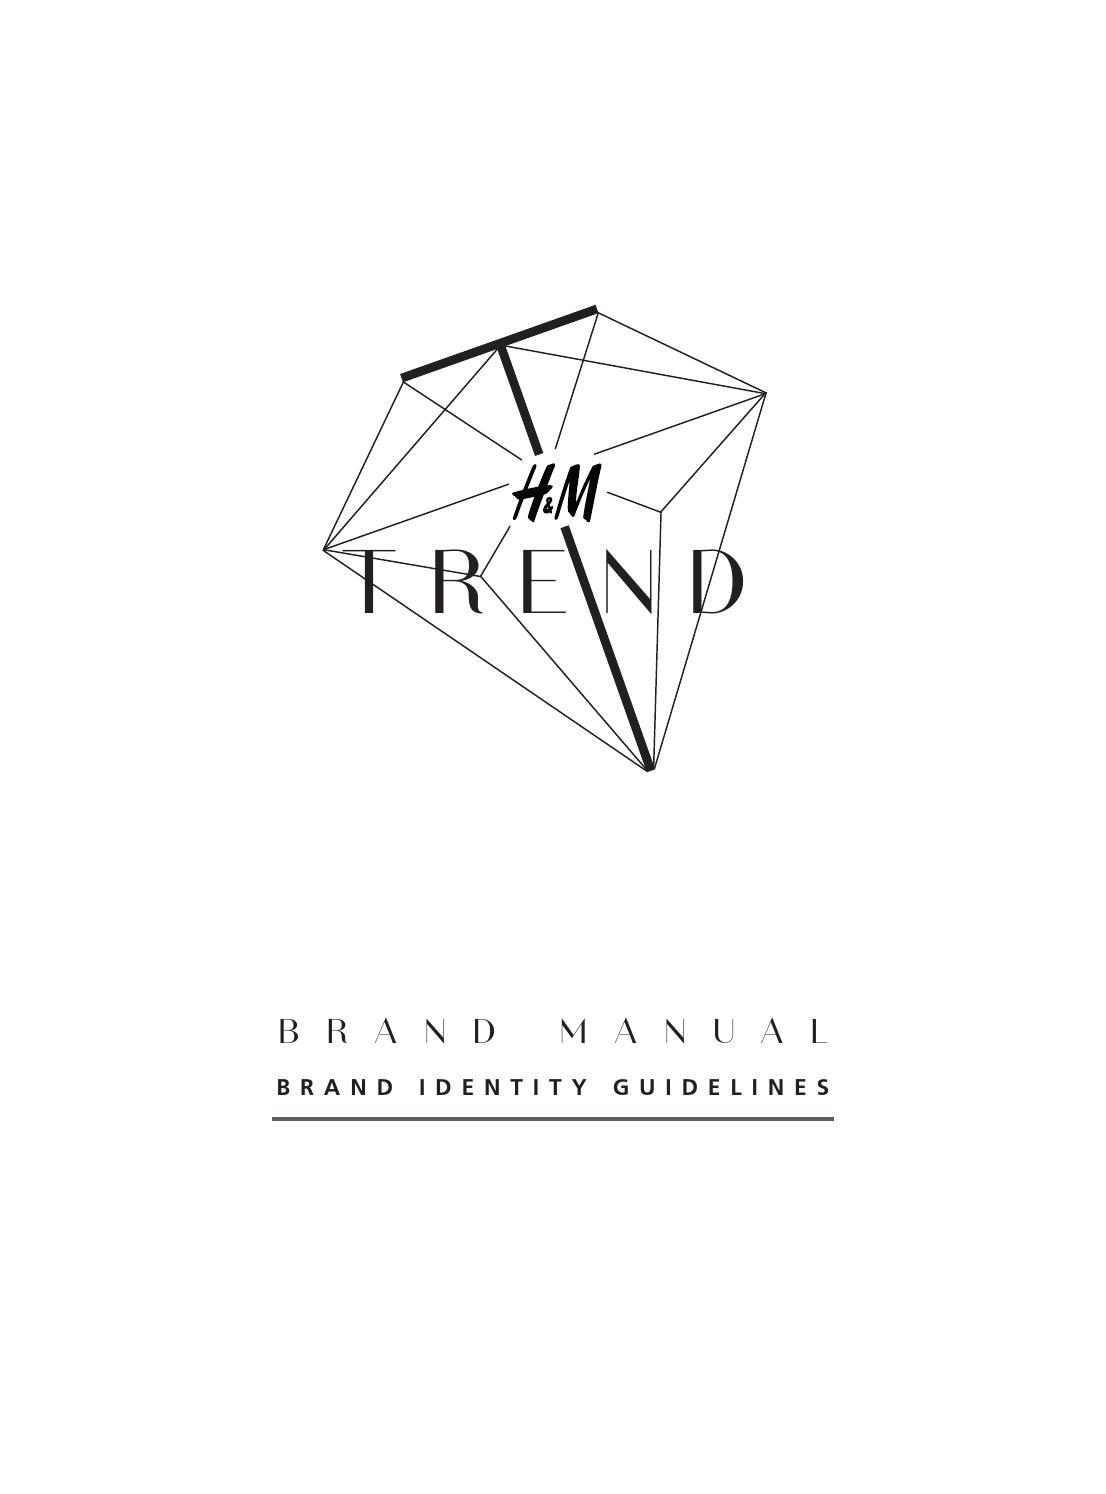 Brand manual h&m trend | Magazine layout | Pinterest | Brand manual ...